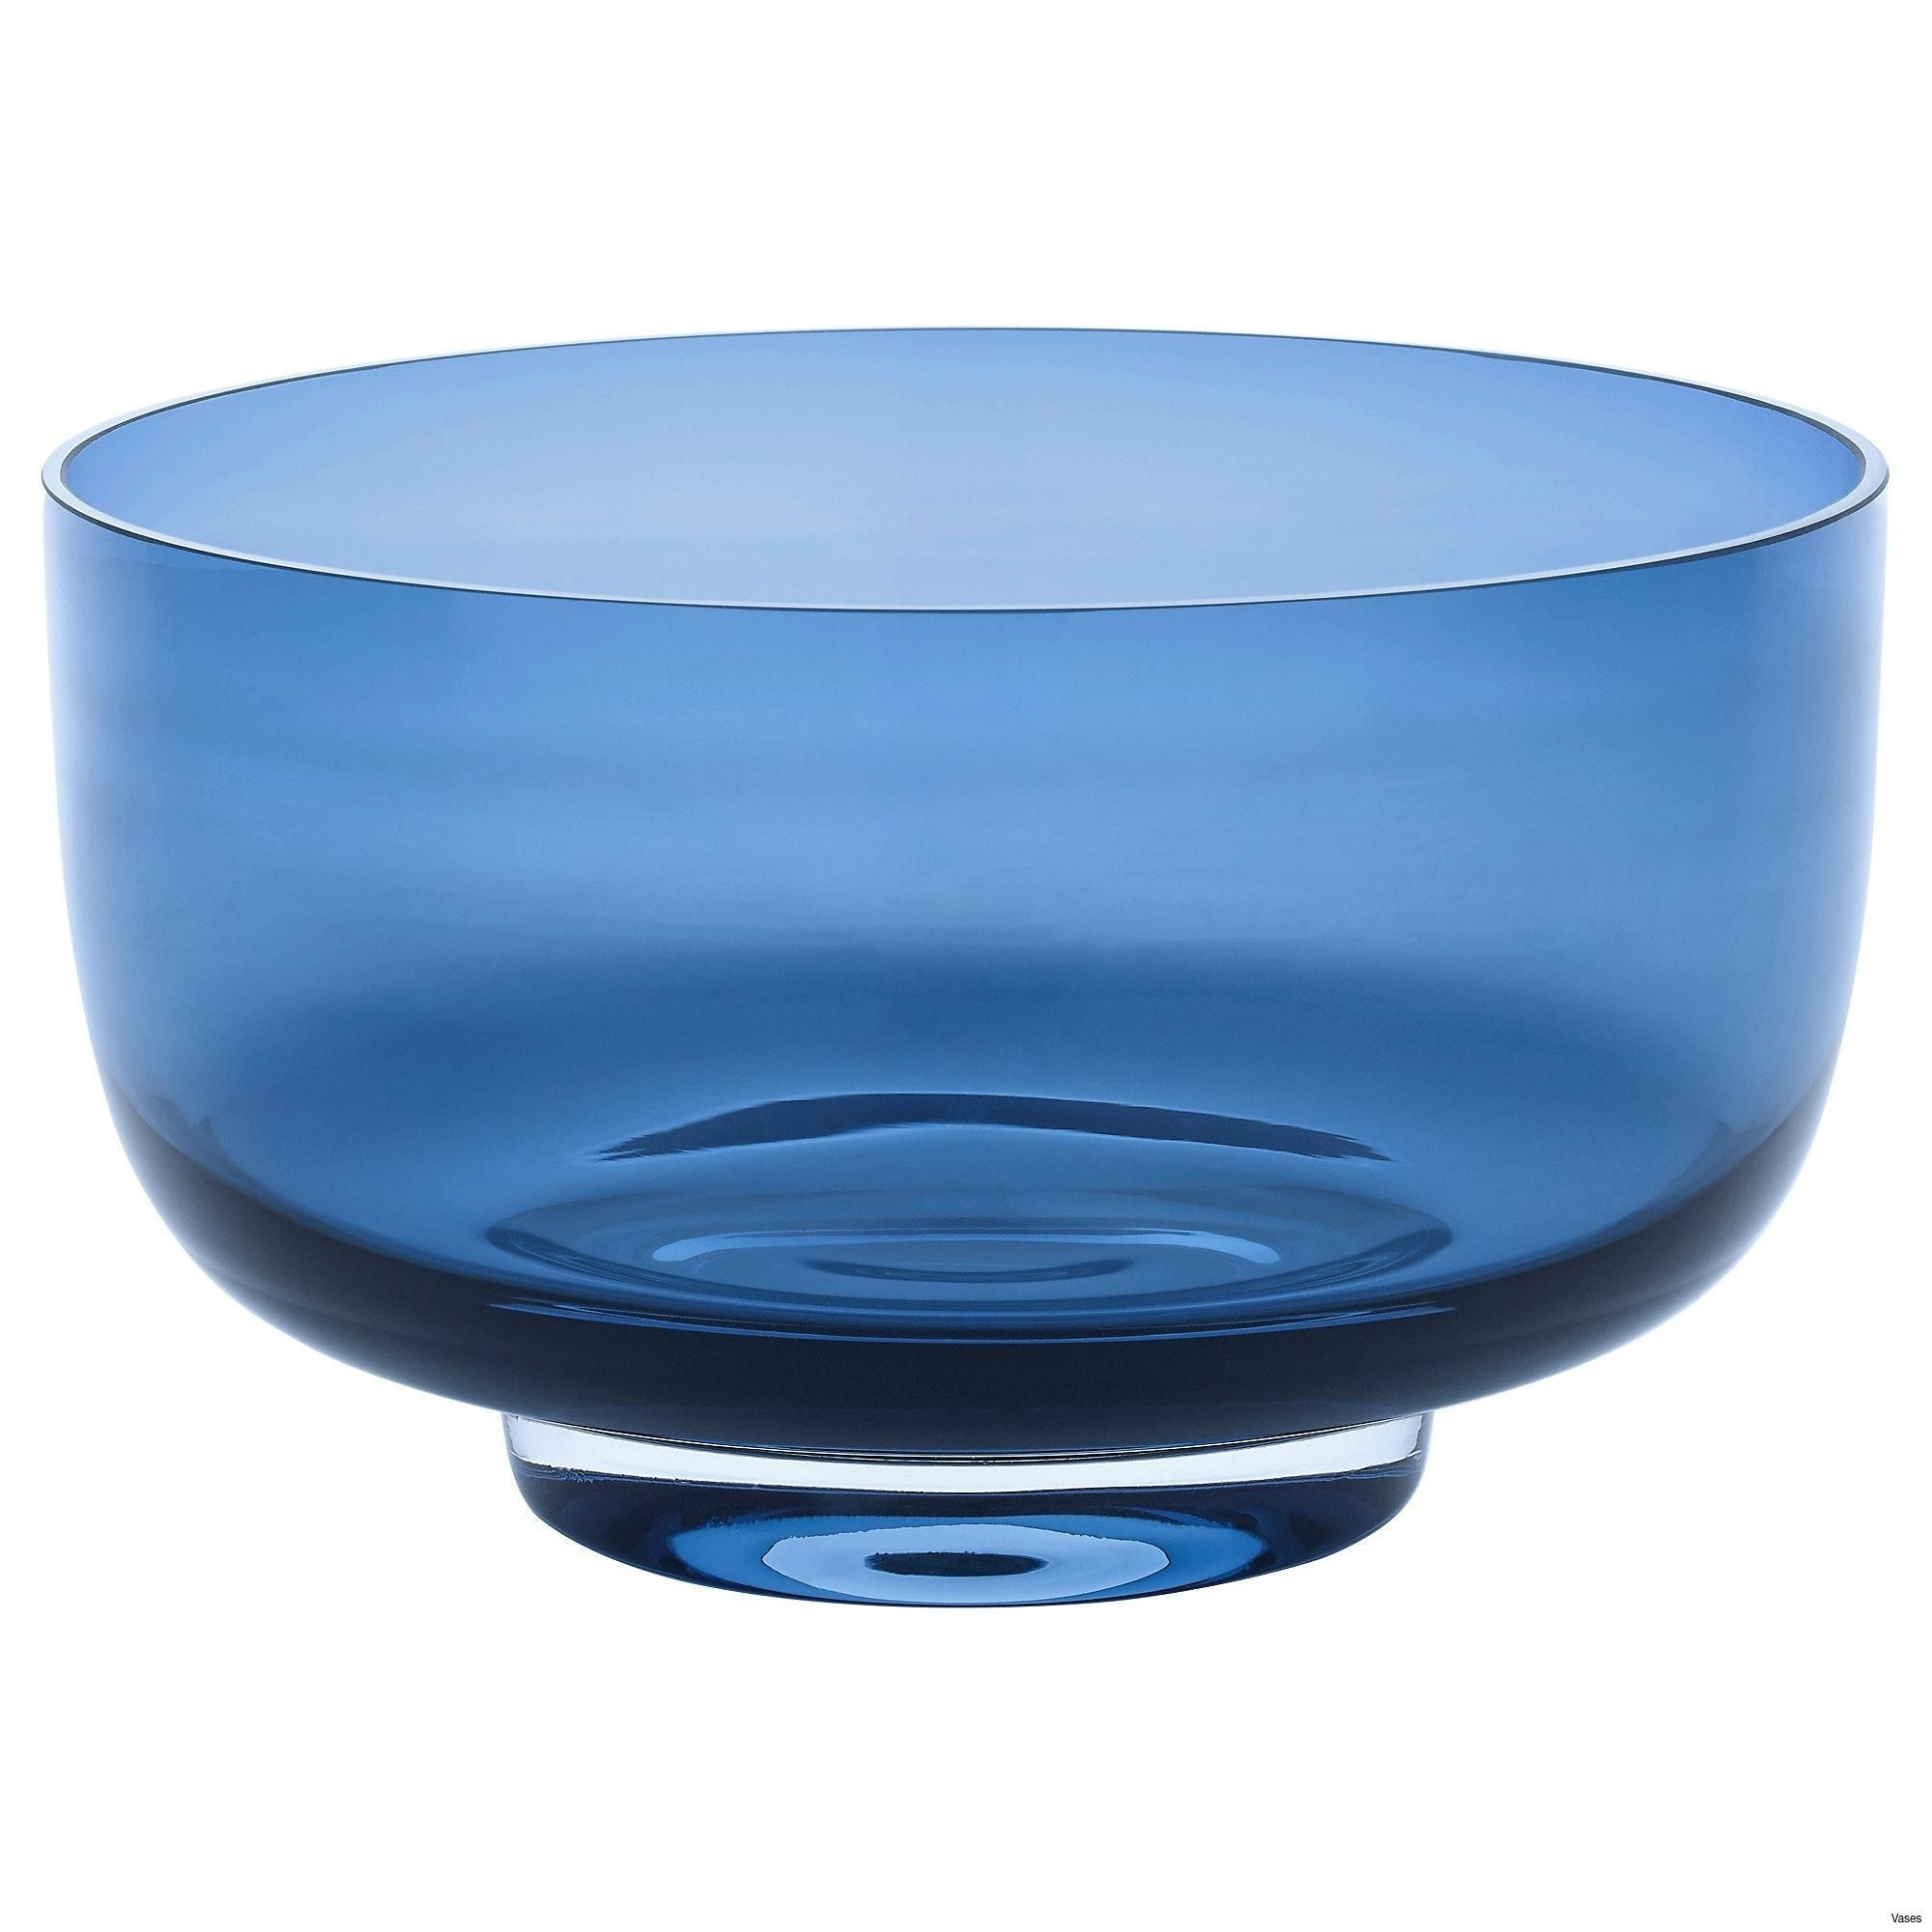 blue vase award of blue crystal vase unique decorative glass bowl new living room ikea within blue crystal vase unique decorative glass bowl new living room ikea vases awesome pe s5h